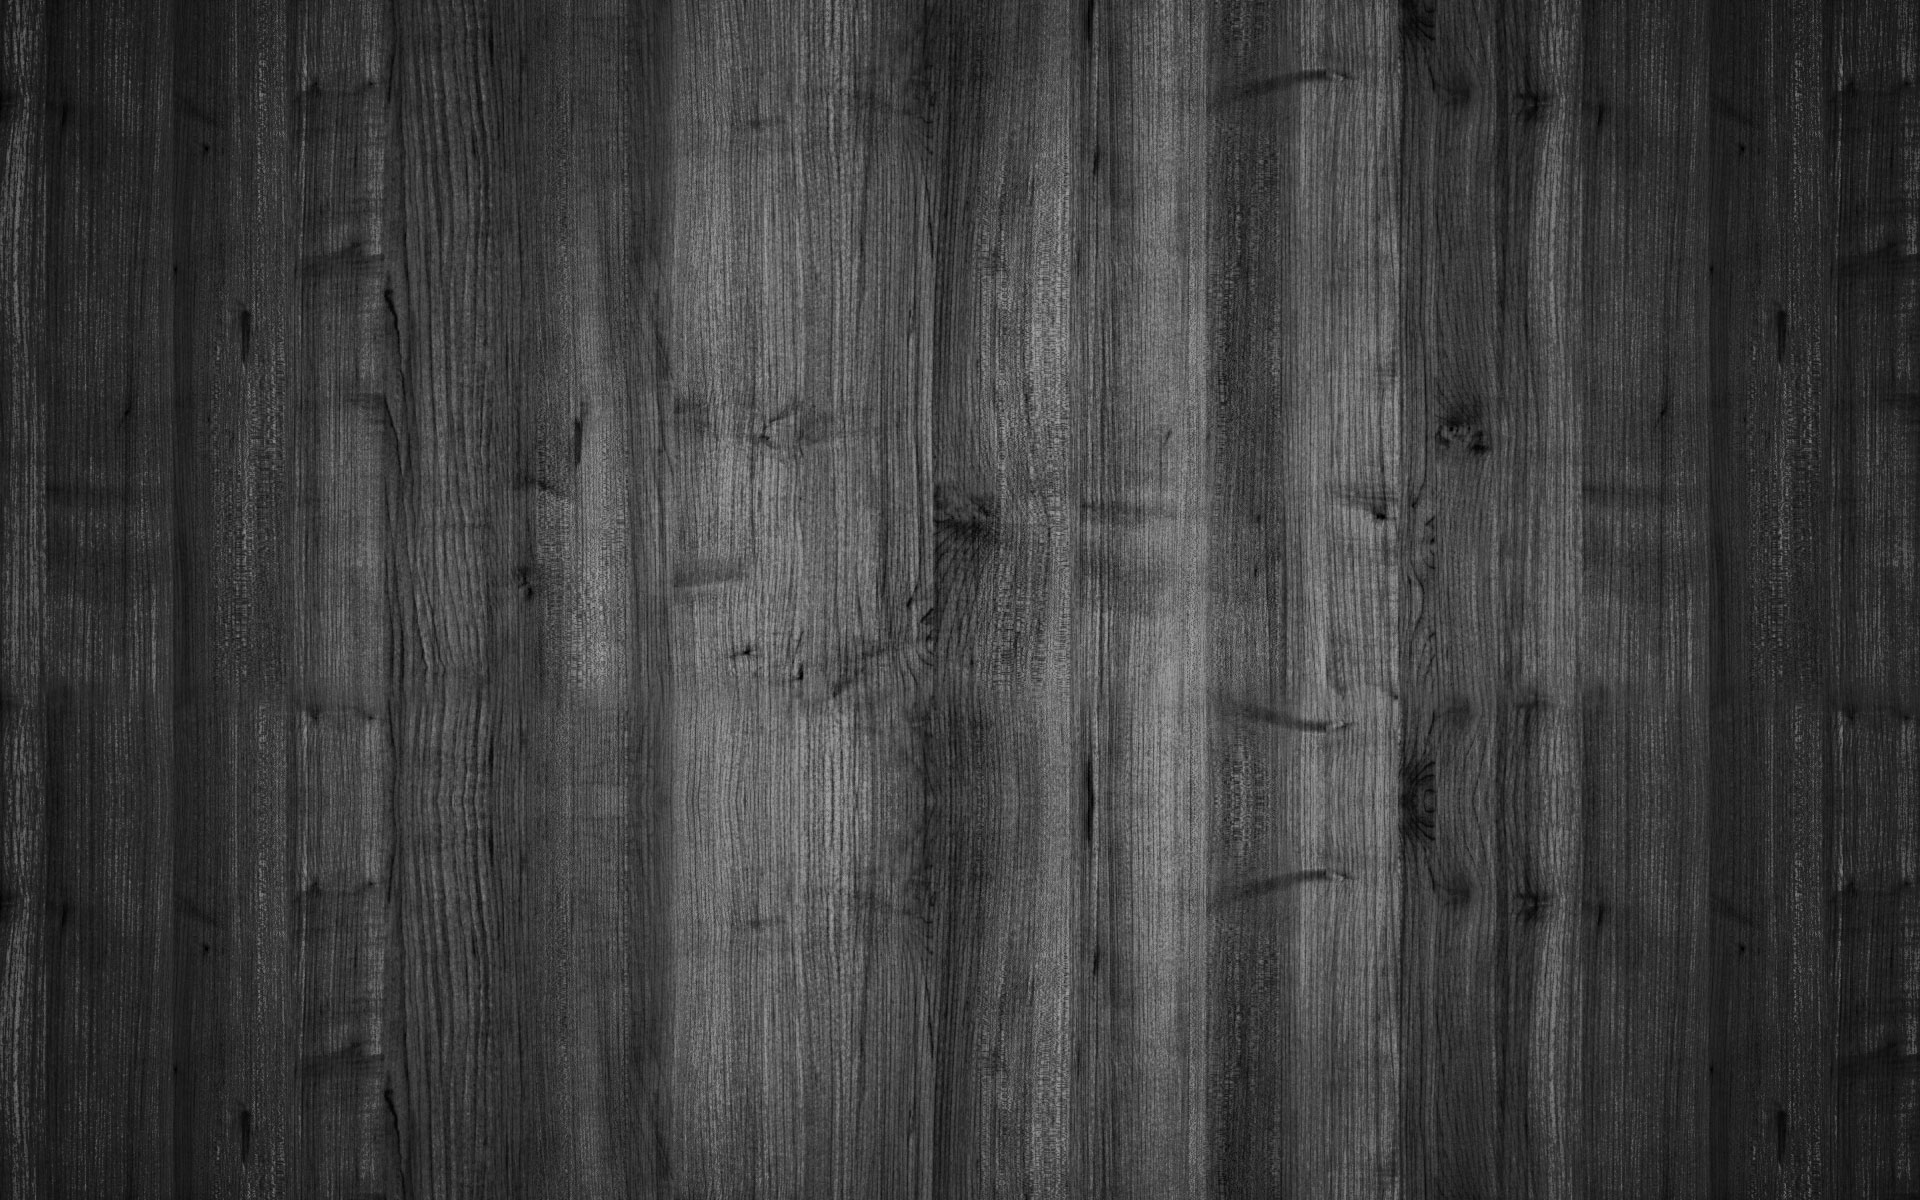 Texture Weathered Wooden Wall Aged Wooden Plank Fence